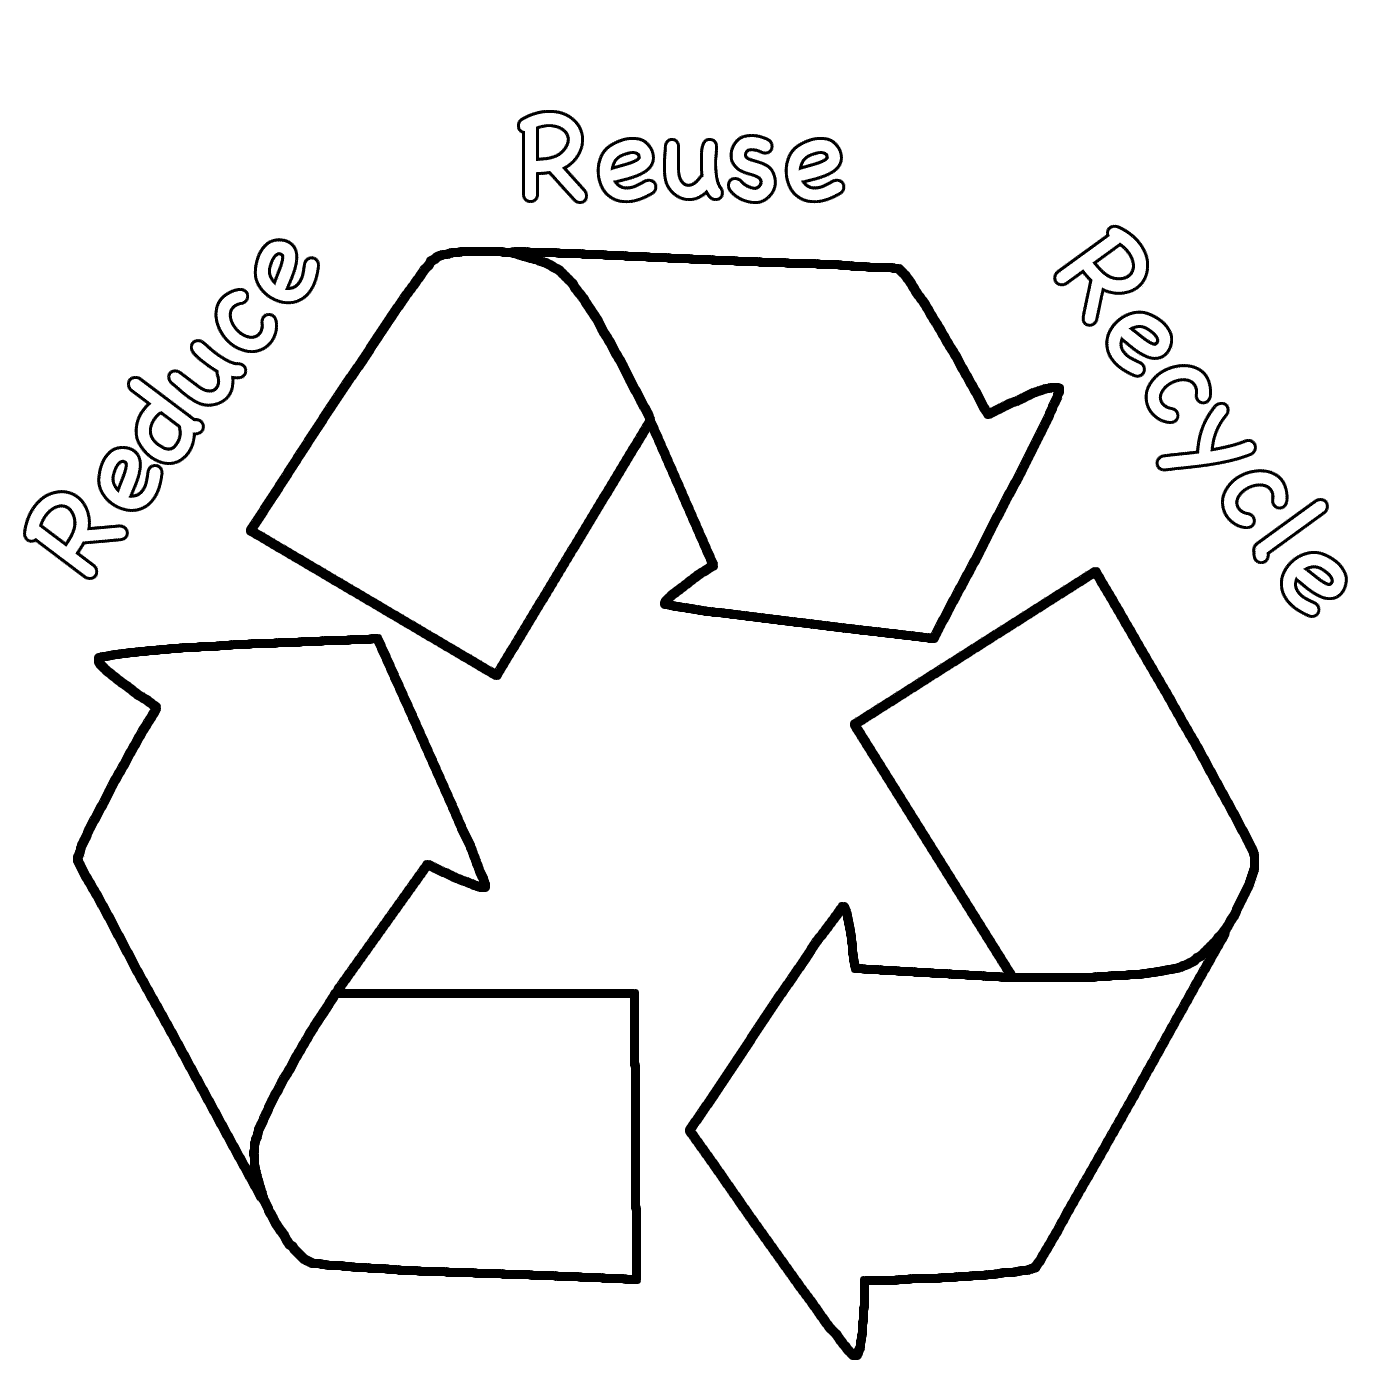 Recycling Coloring Pages For Kids - Coloring Home